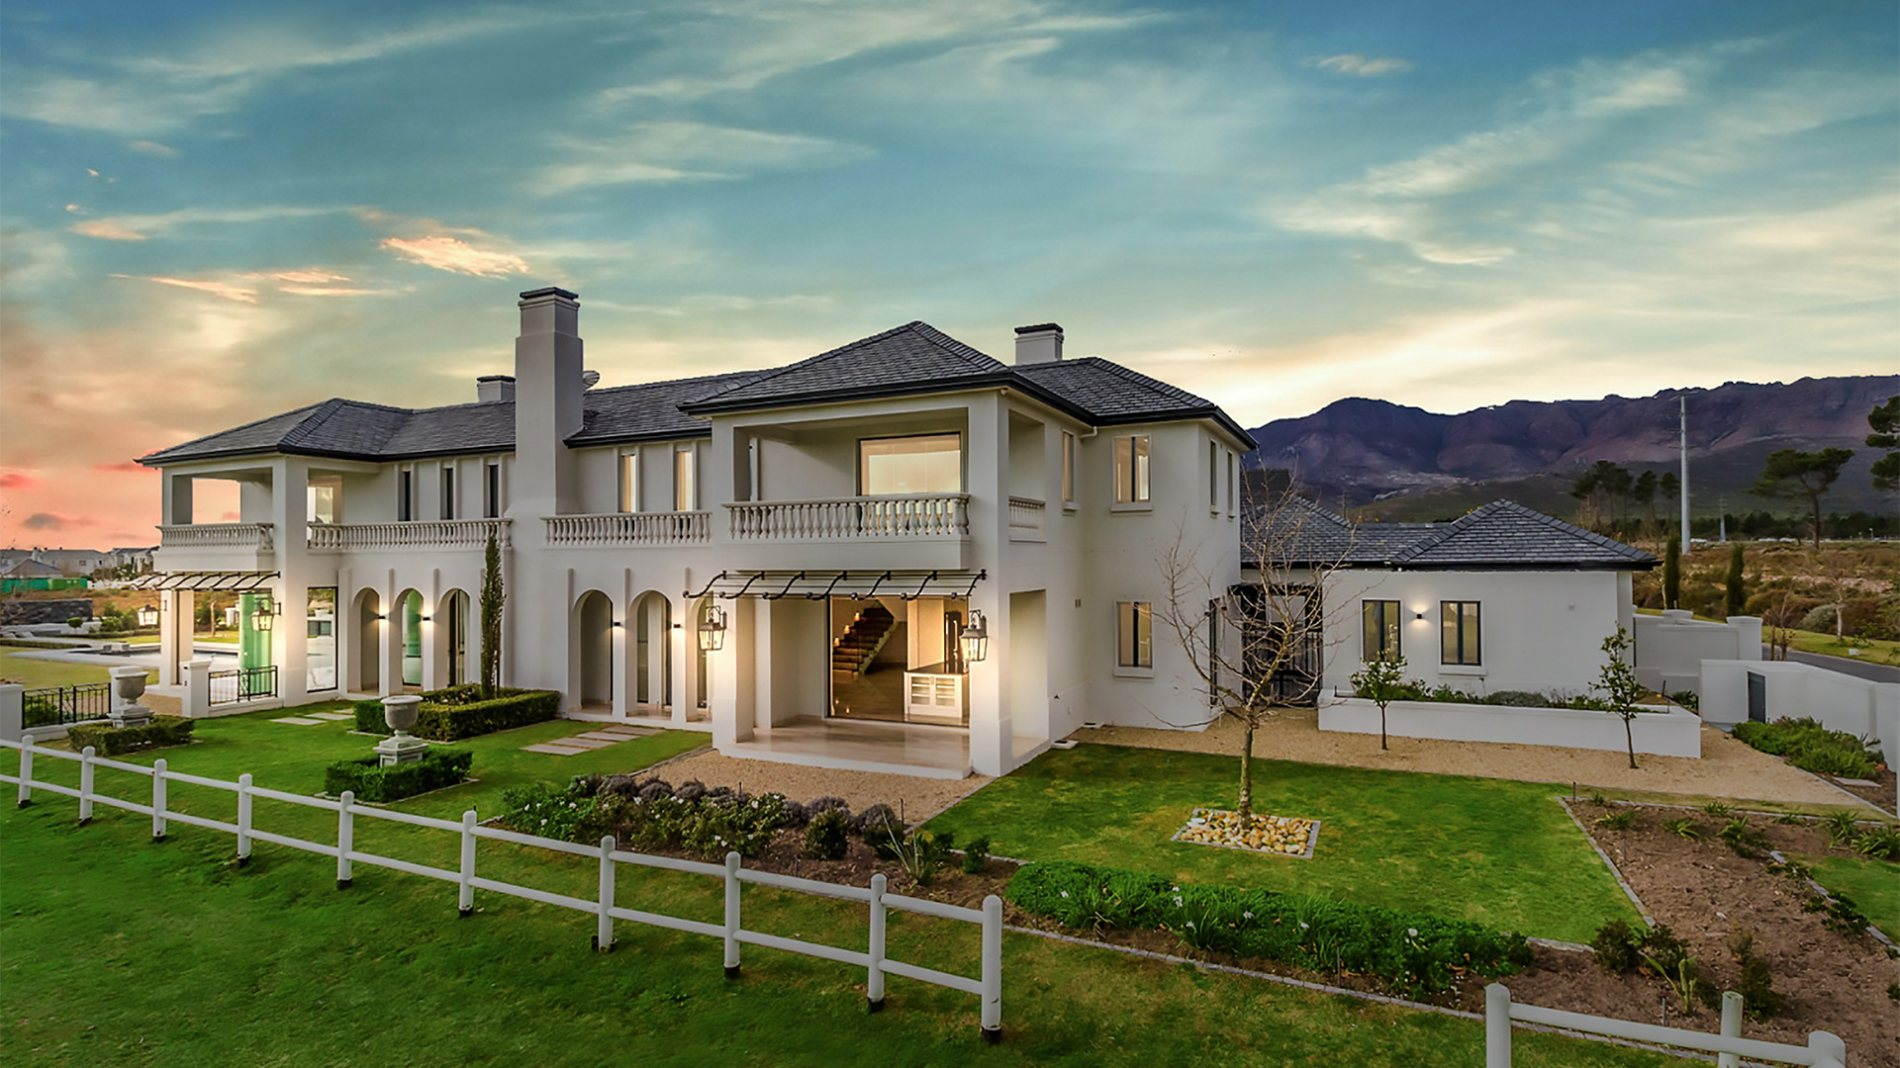 Luxury home trends expected post-pandemic